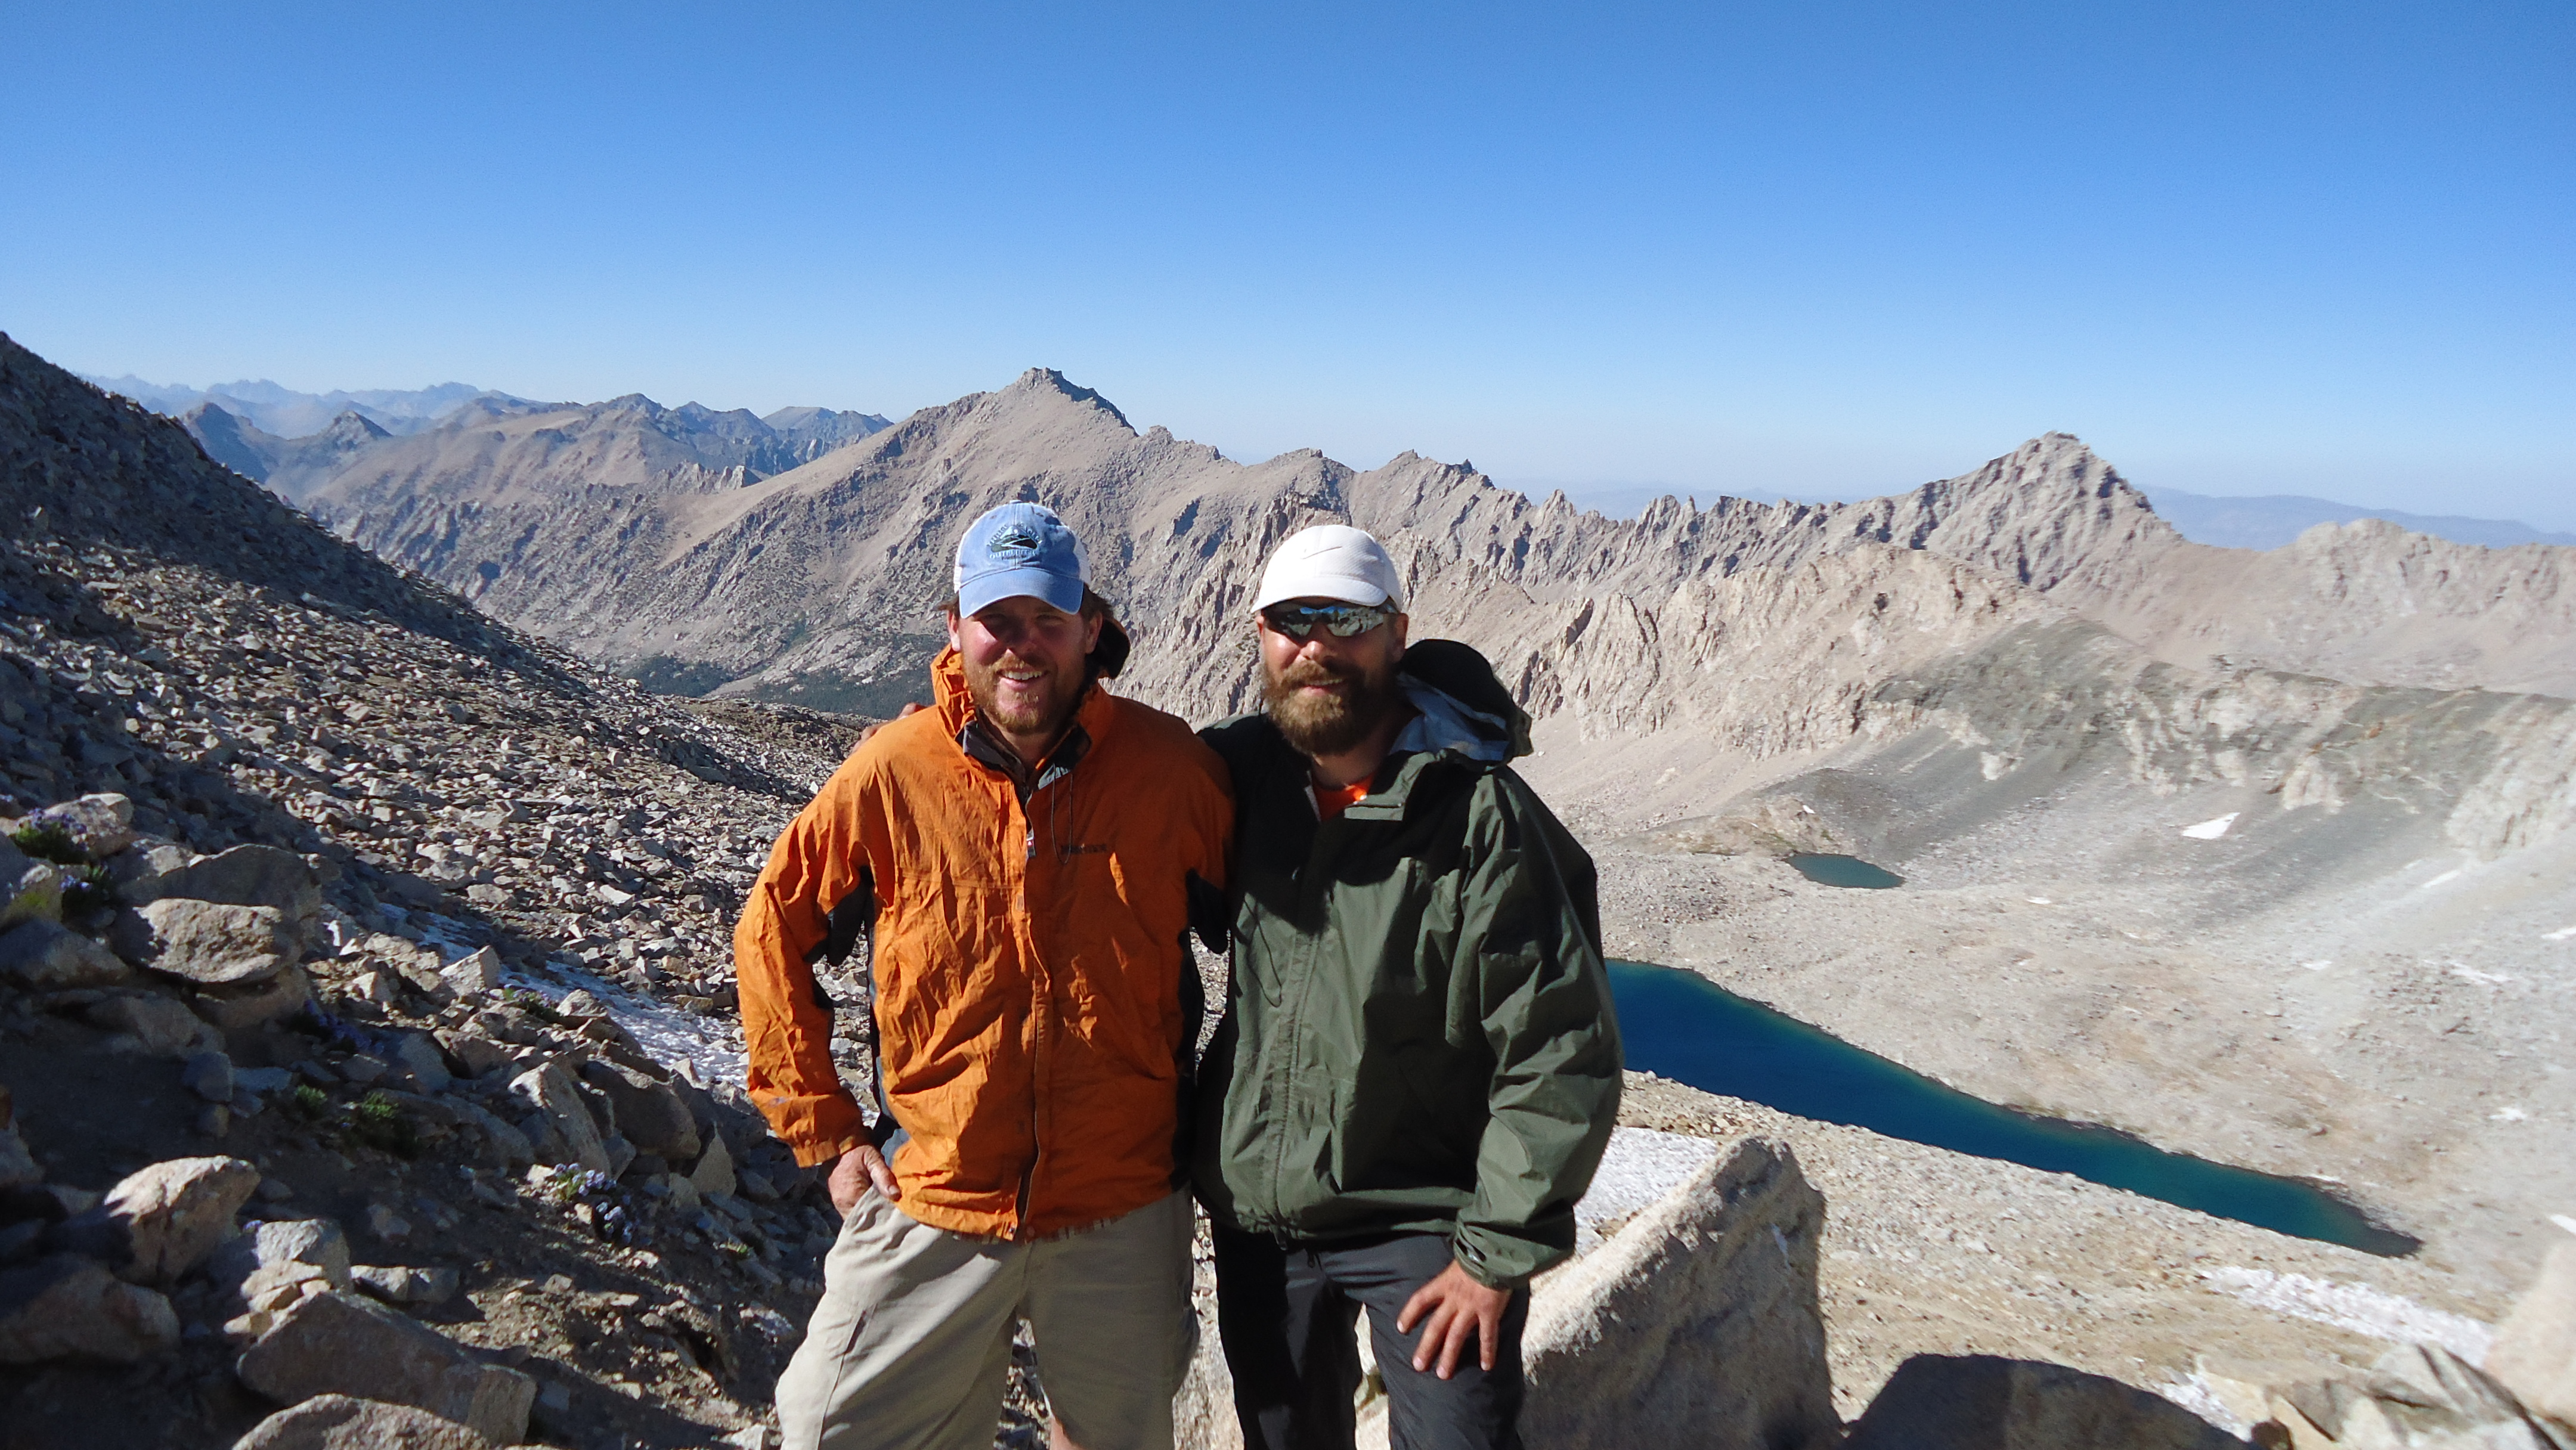 Me and Jake on Forester Pass